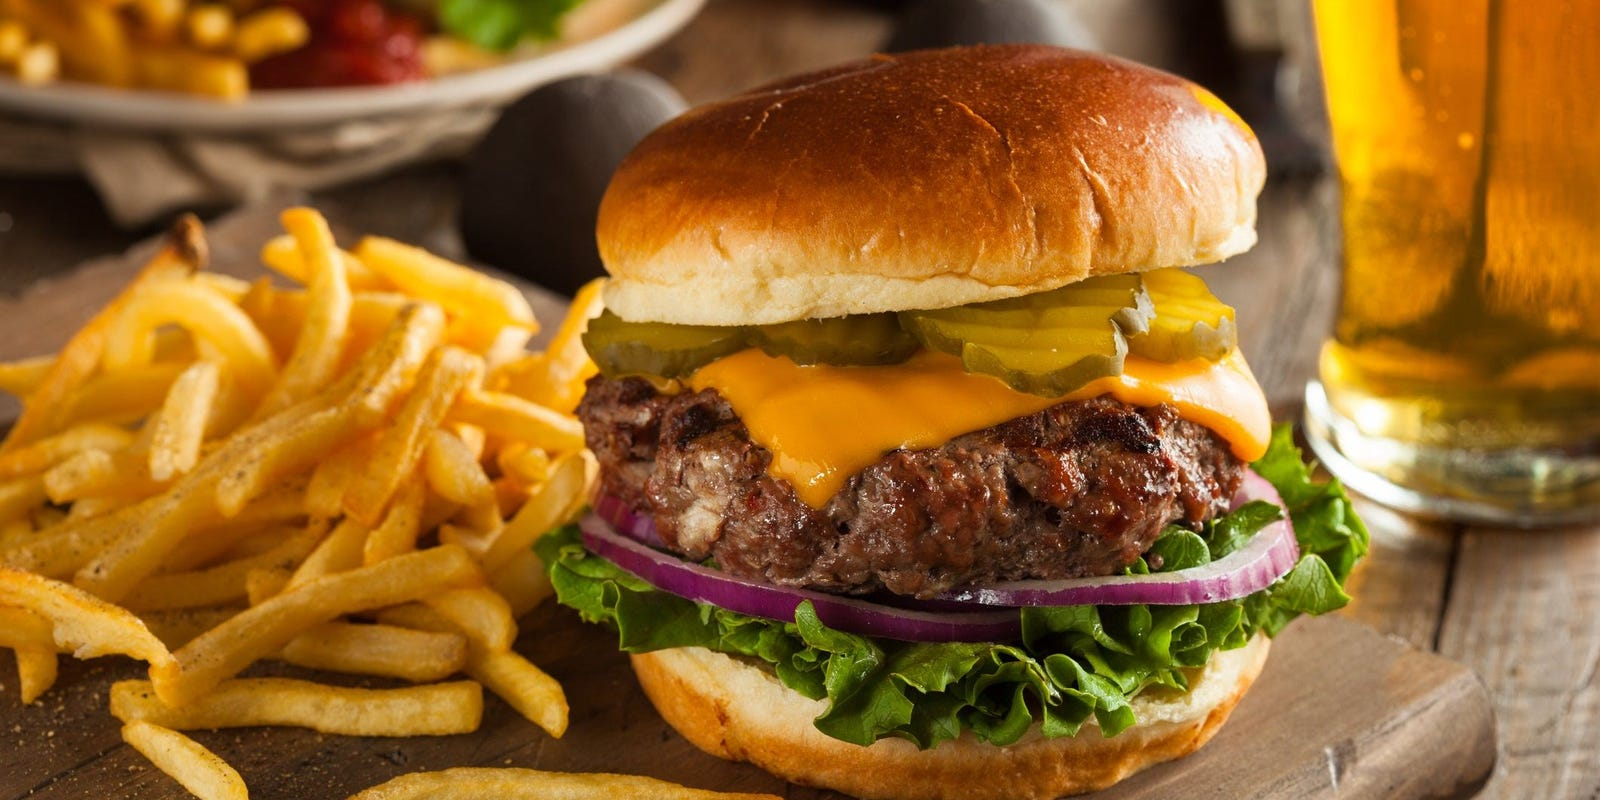 Get free burgers and deals Sept. 18